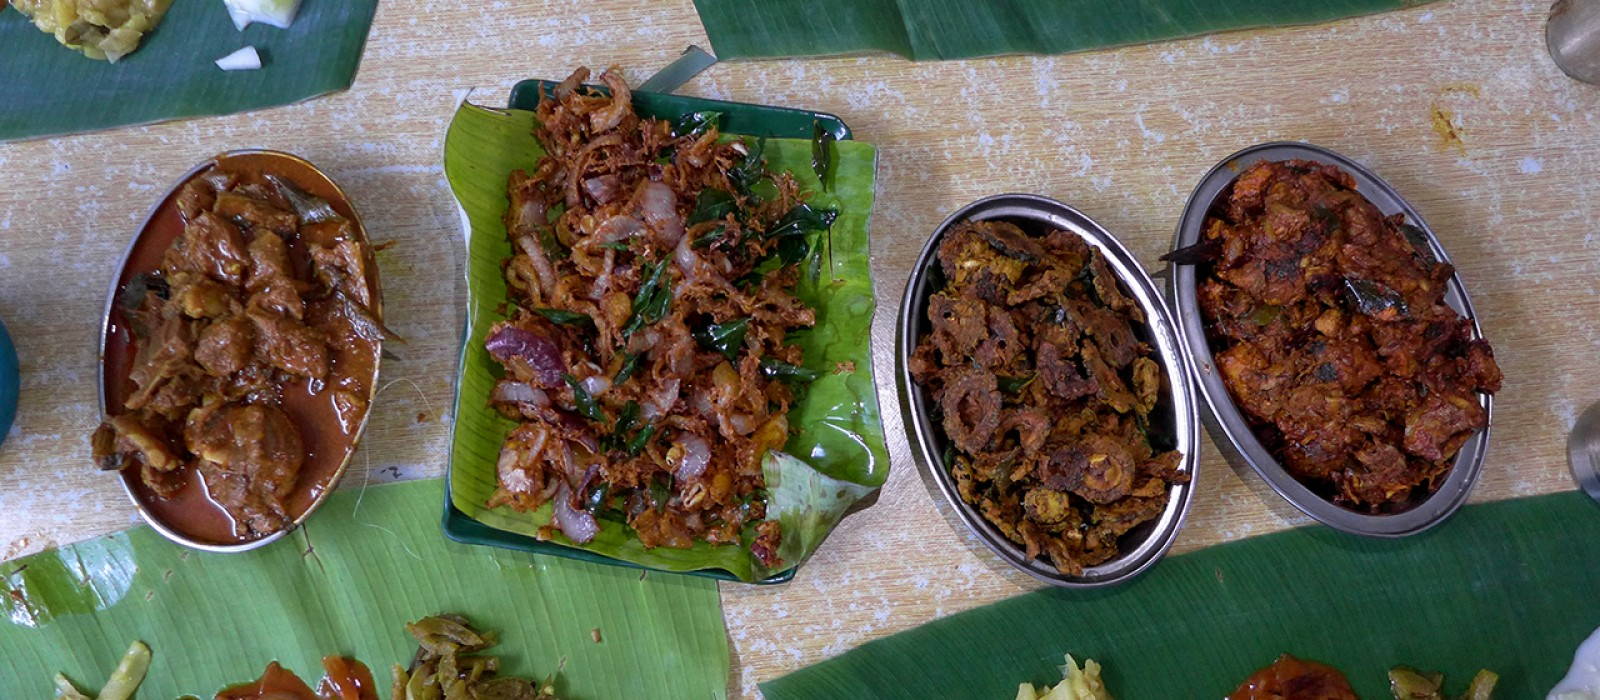 Sri Ganapathi Mess, PJ Old Town